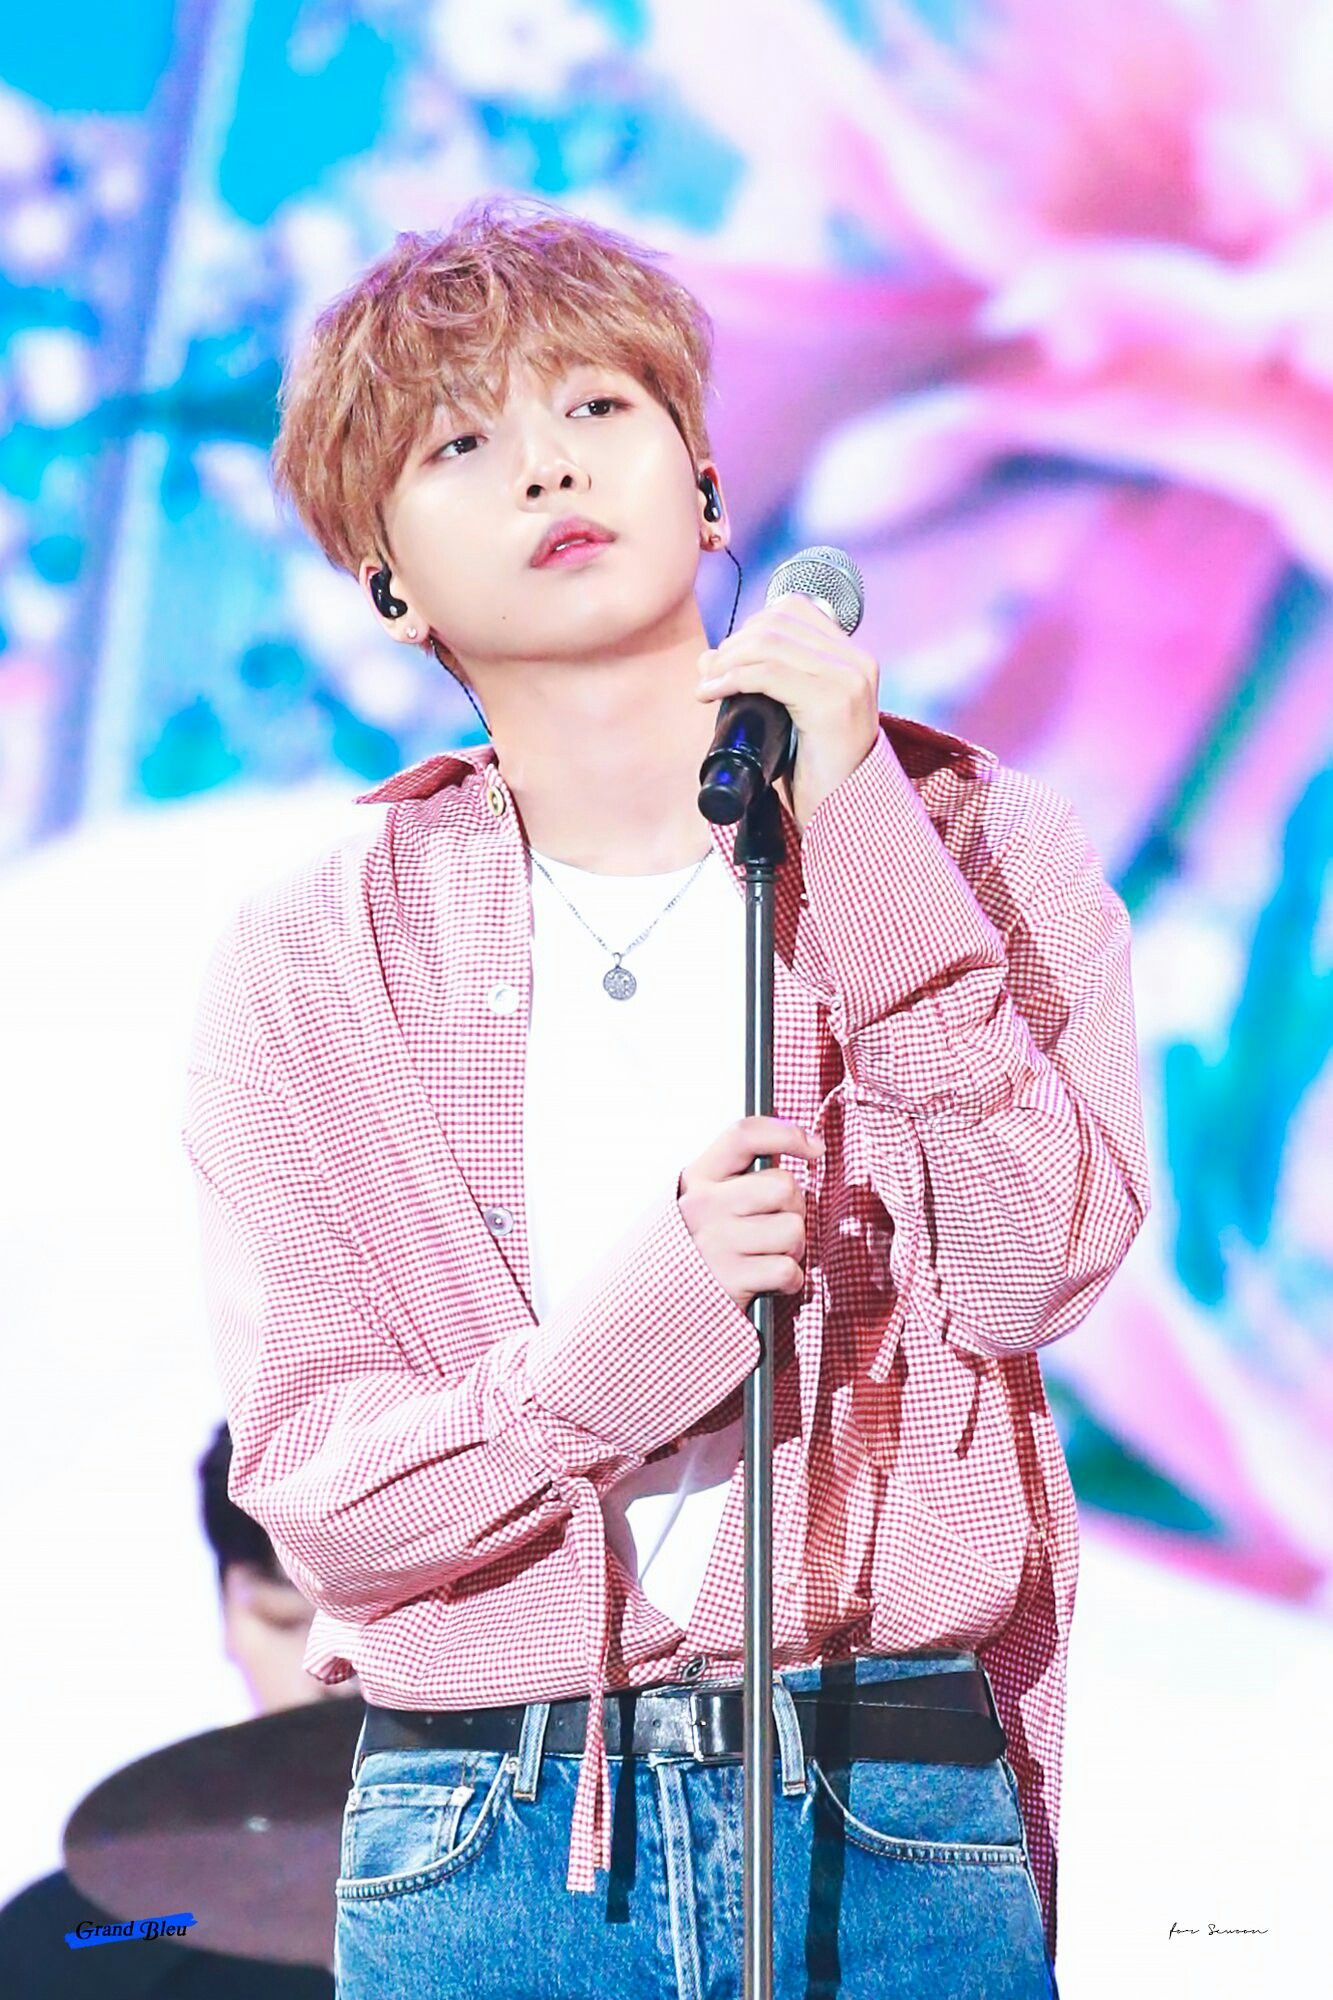 I M In Love With Sewoon Jung Sewoon Ponyo Starship Entertainment